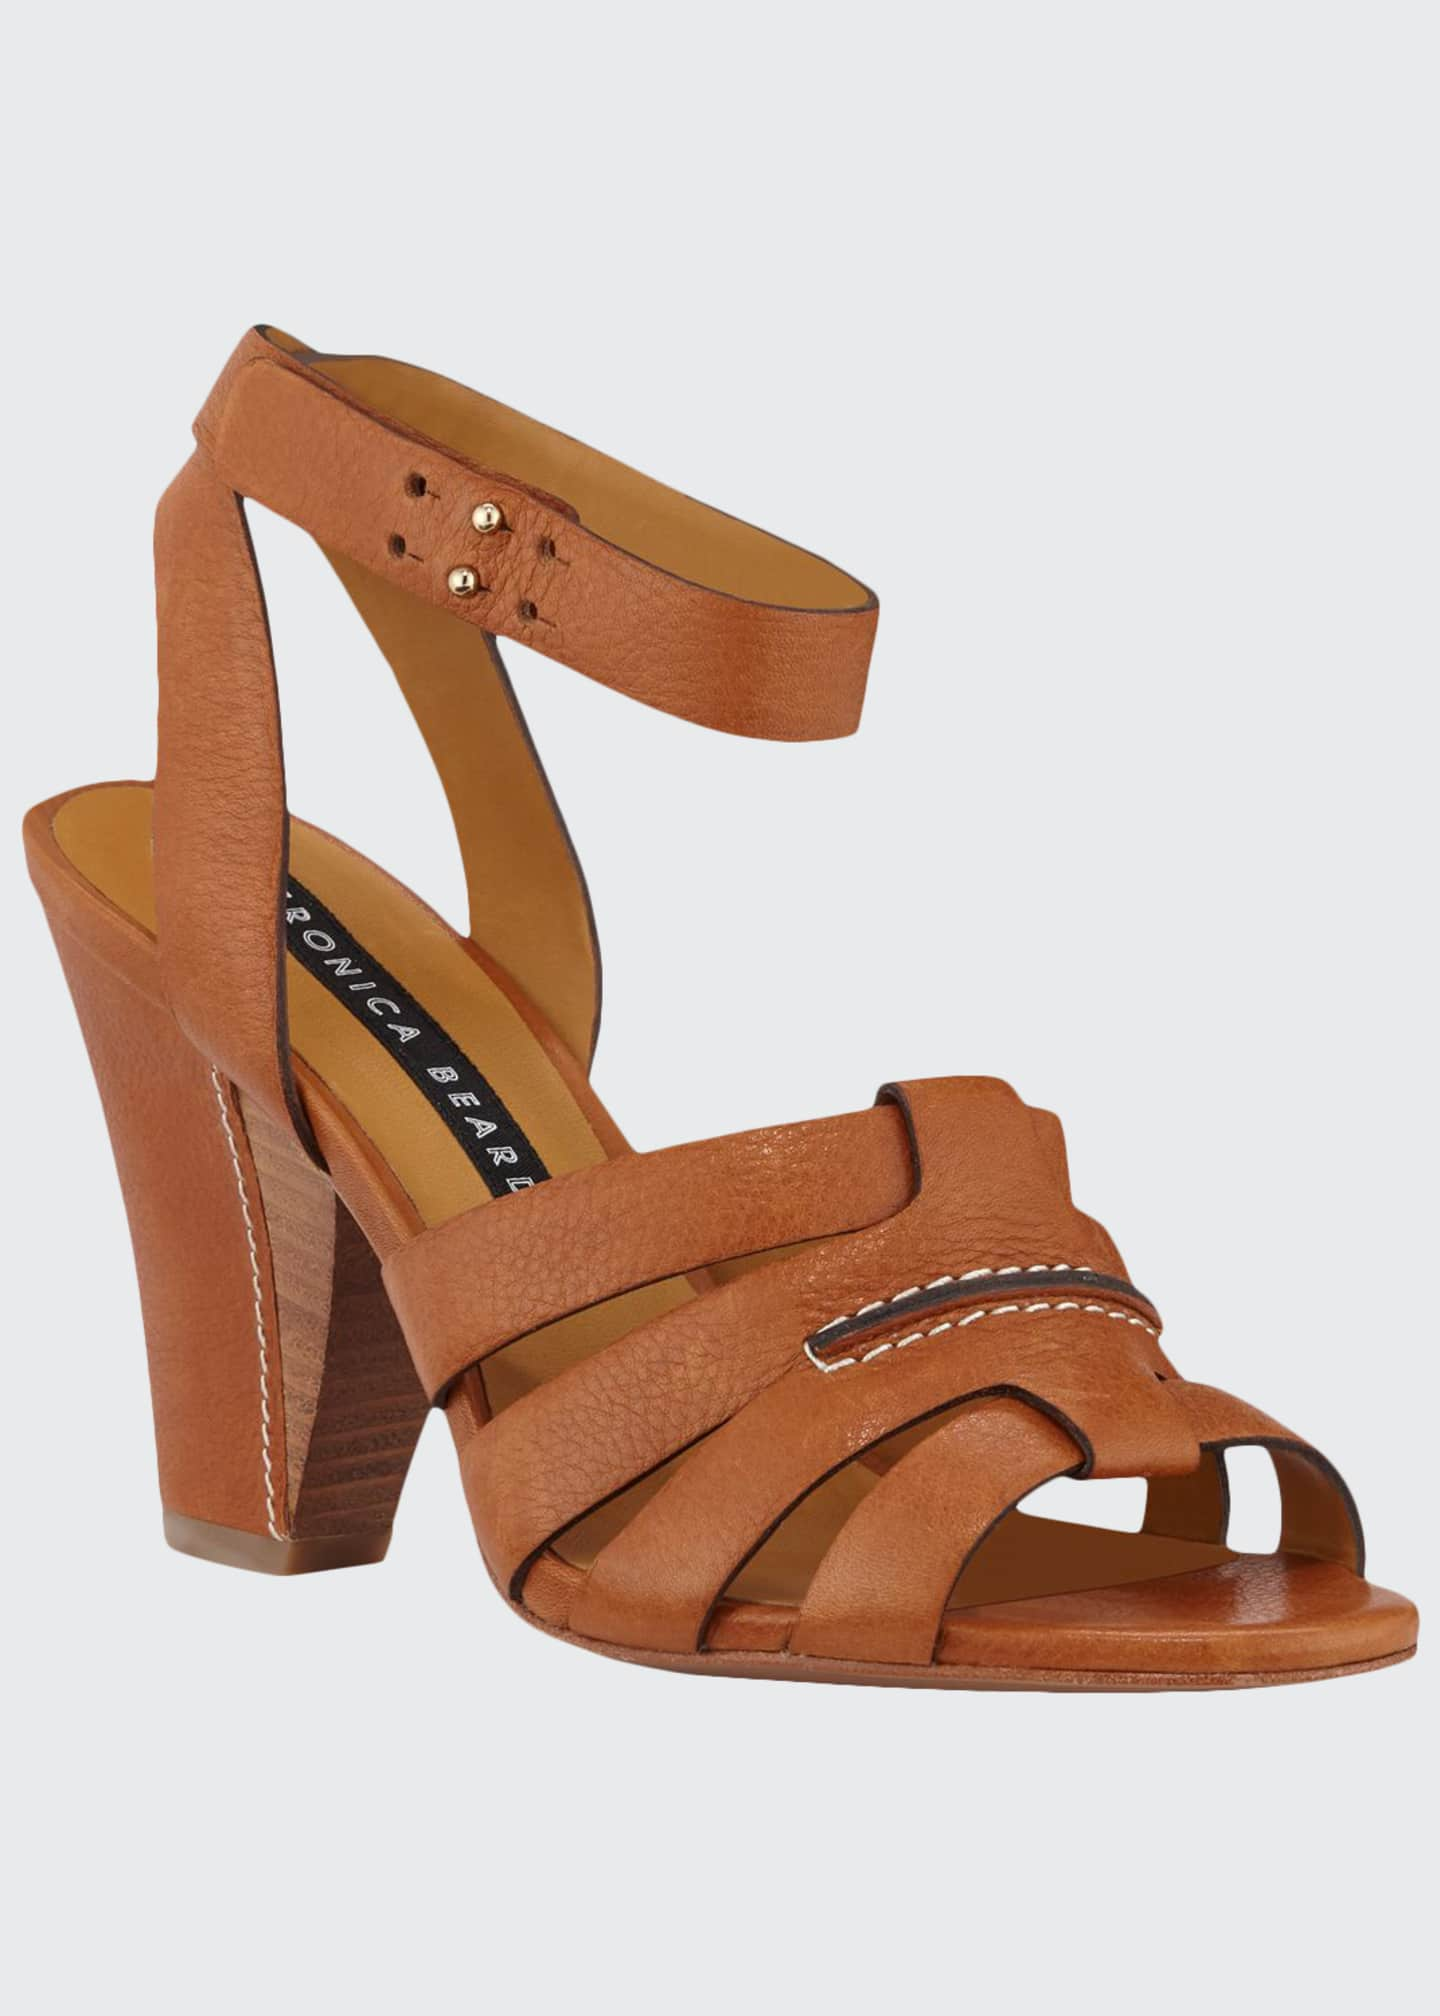 Veronica Beard Charley Leather Ankle-Wrap Sandals